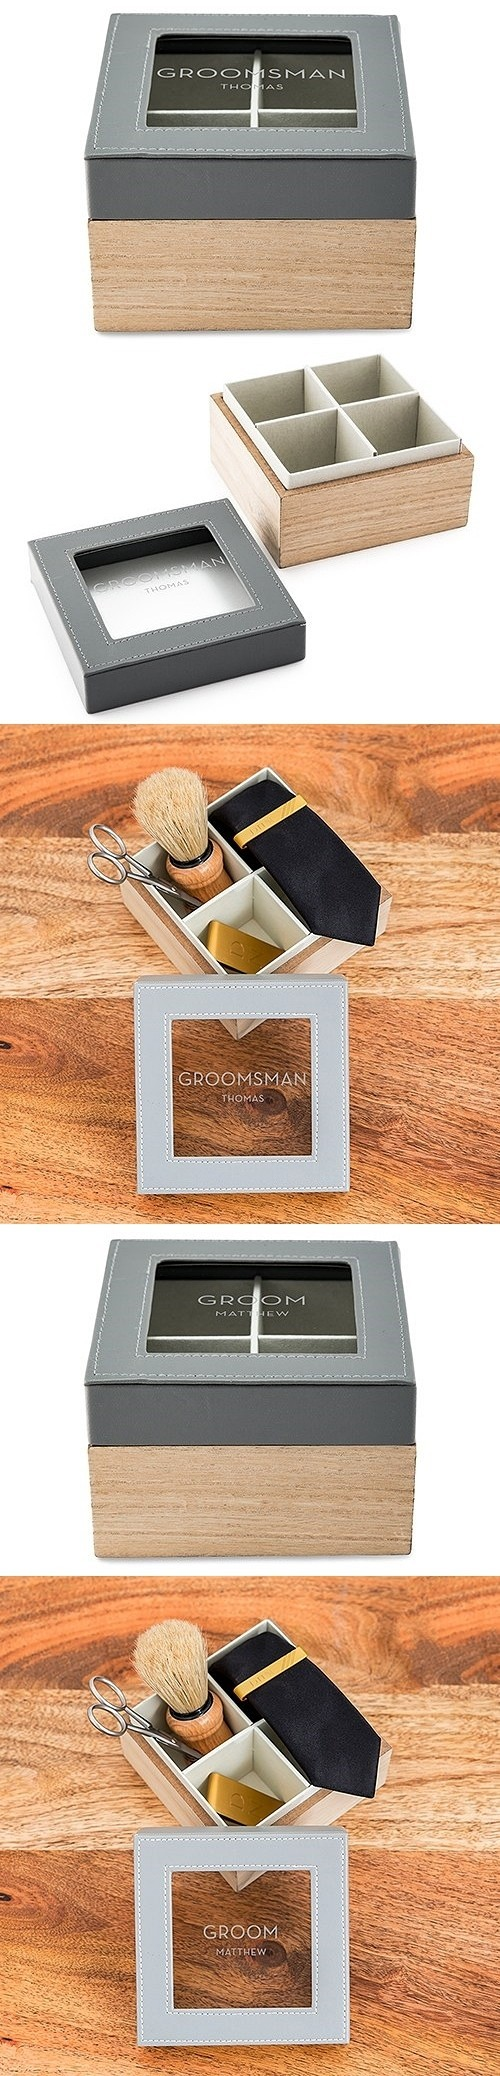 Wood and Faux-Leather Keepsake Box with Glass Lid - Groom or Groomsman